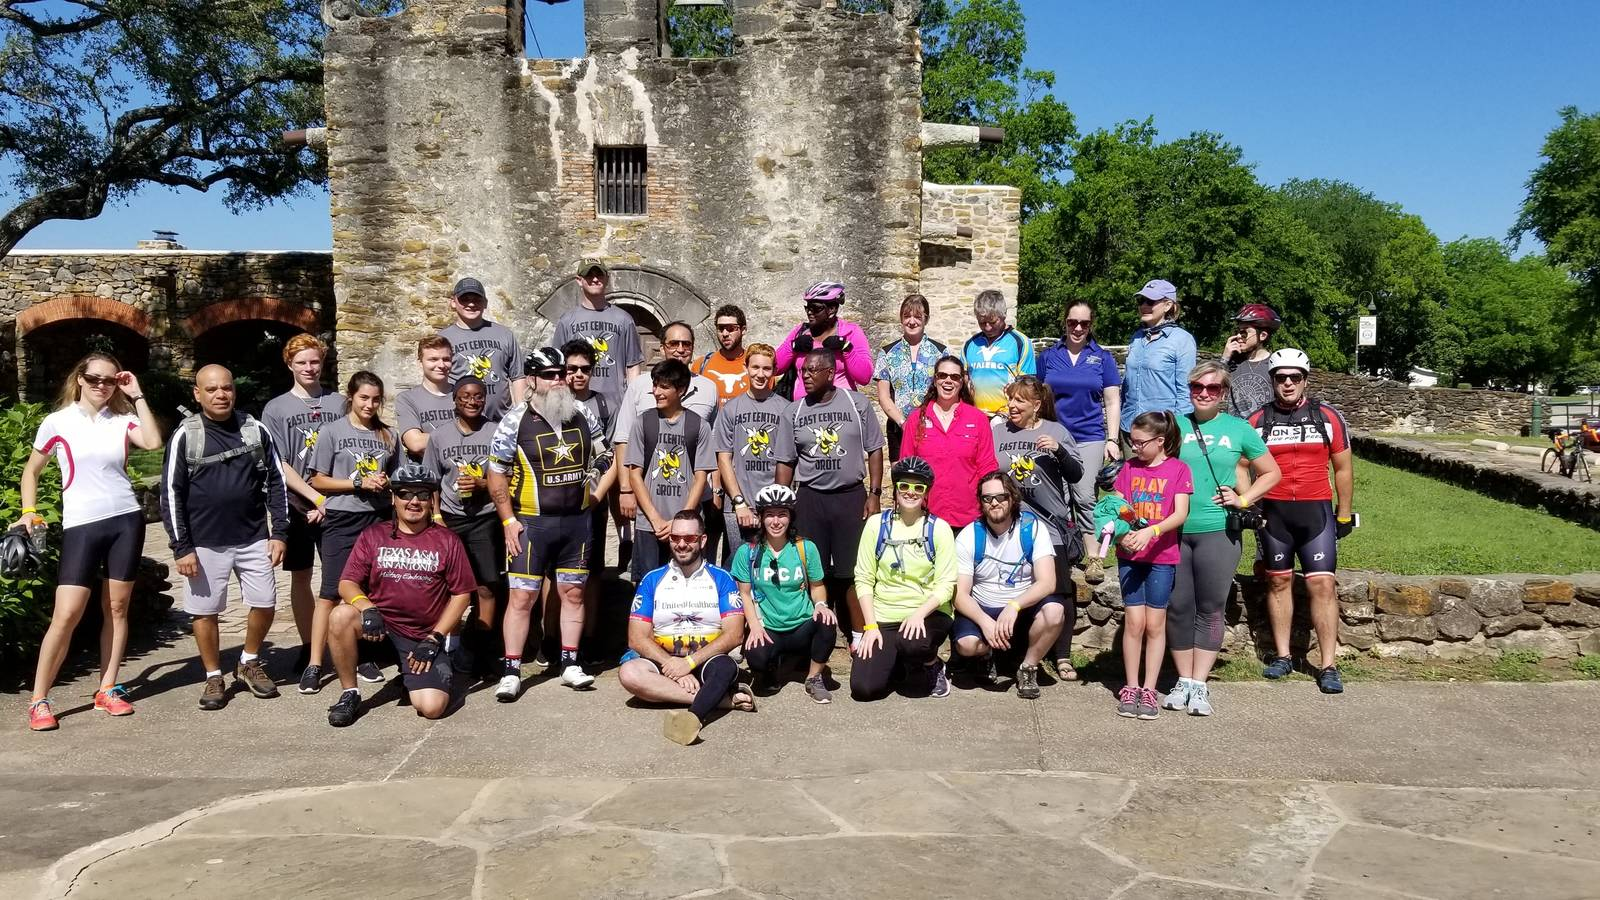 <p>NPCA holds annual biking events in Texas for the veteran community. This 2018 ride took place at San Antonio Missions National Historical Park.</p>